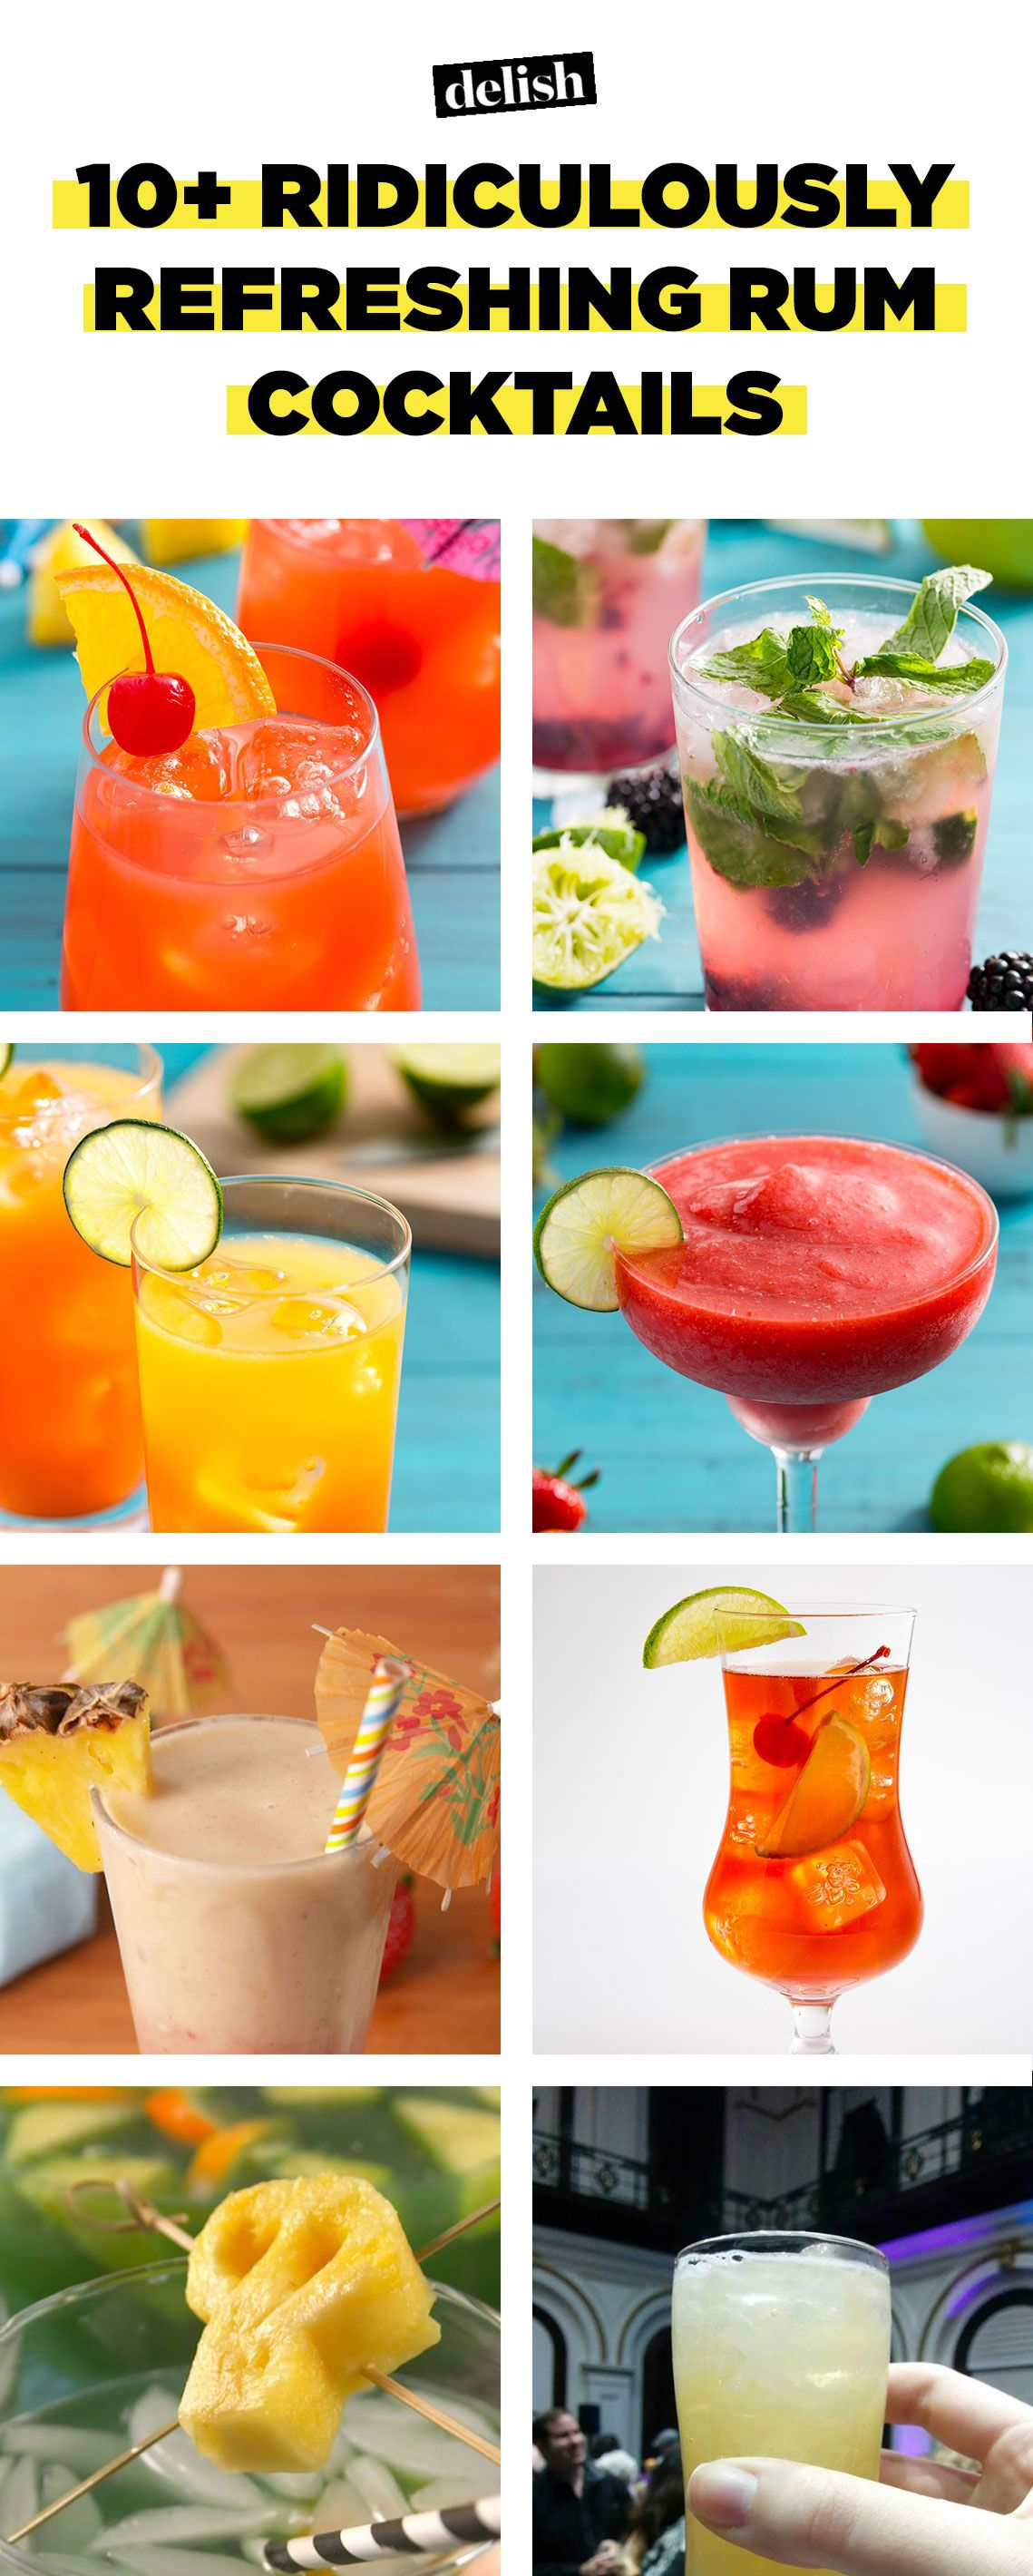 15 Ridiculously Tasty Summer Cocktails And Mocktails